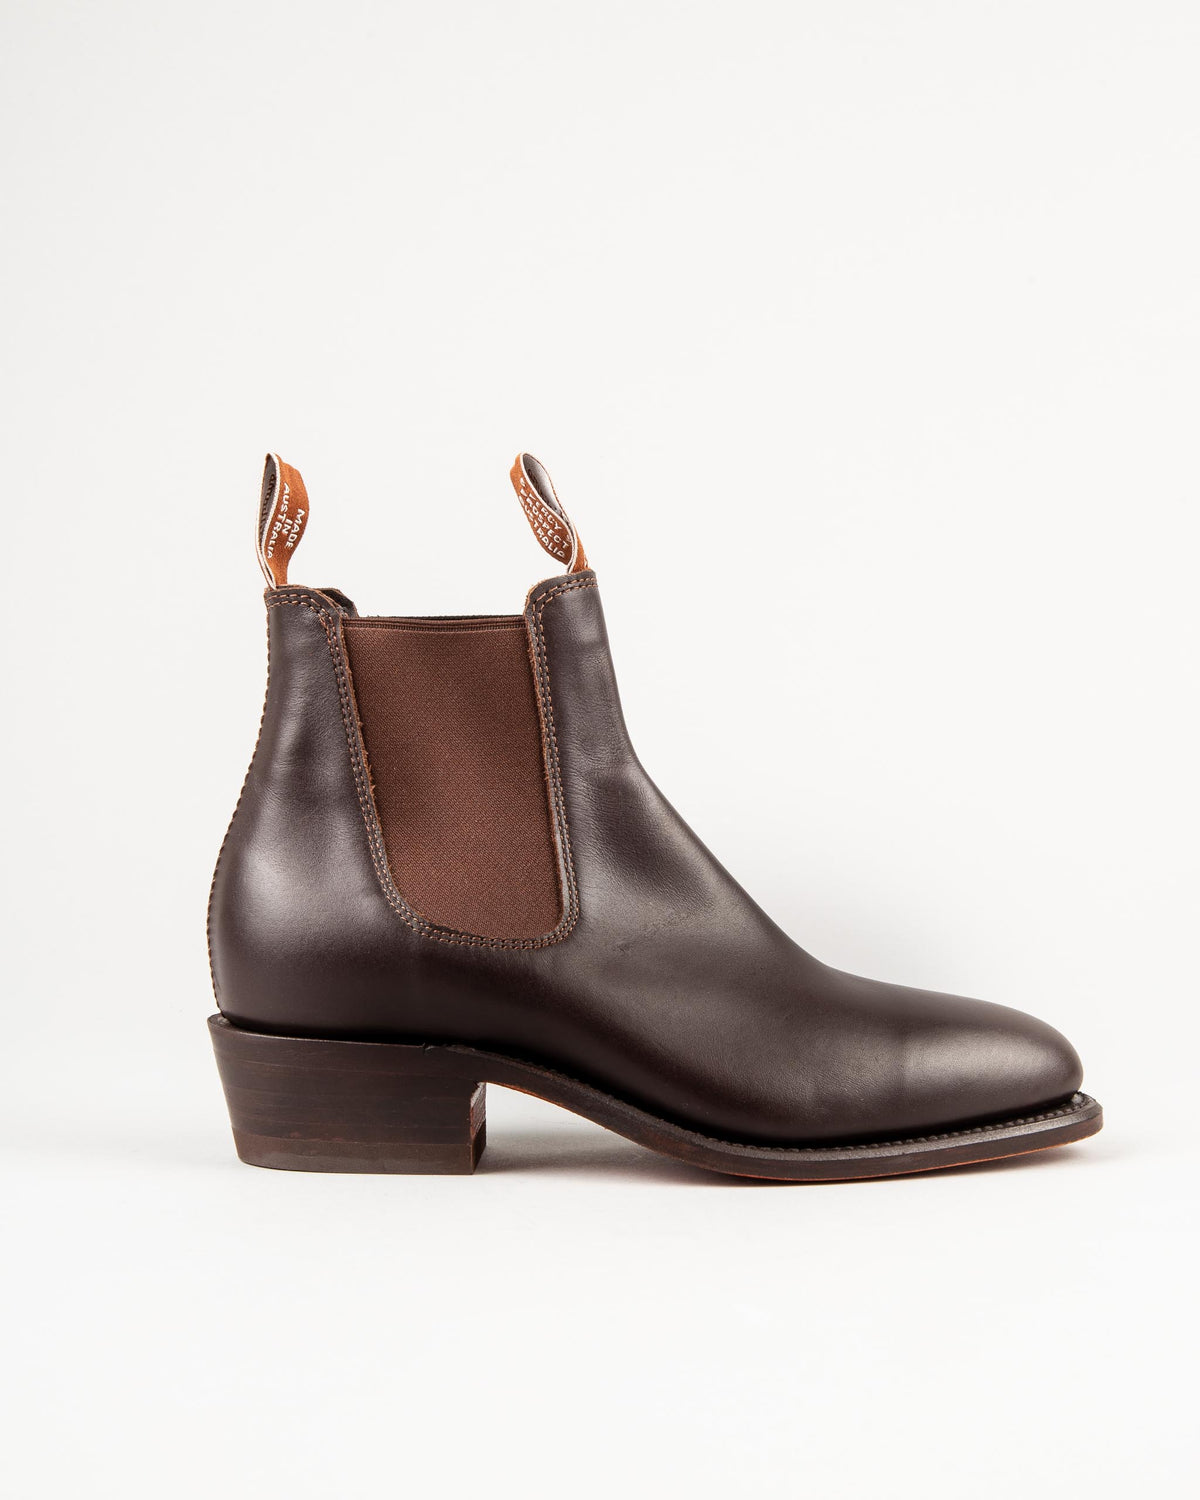 'Lady Yearling' Chelsea Boot